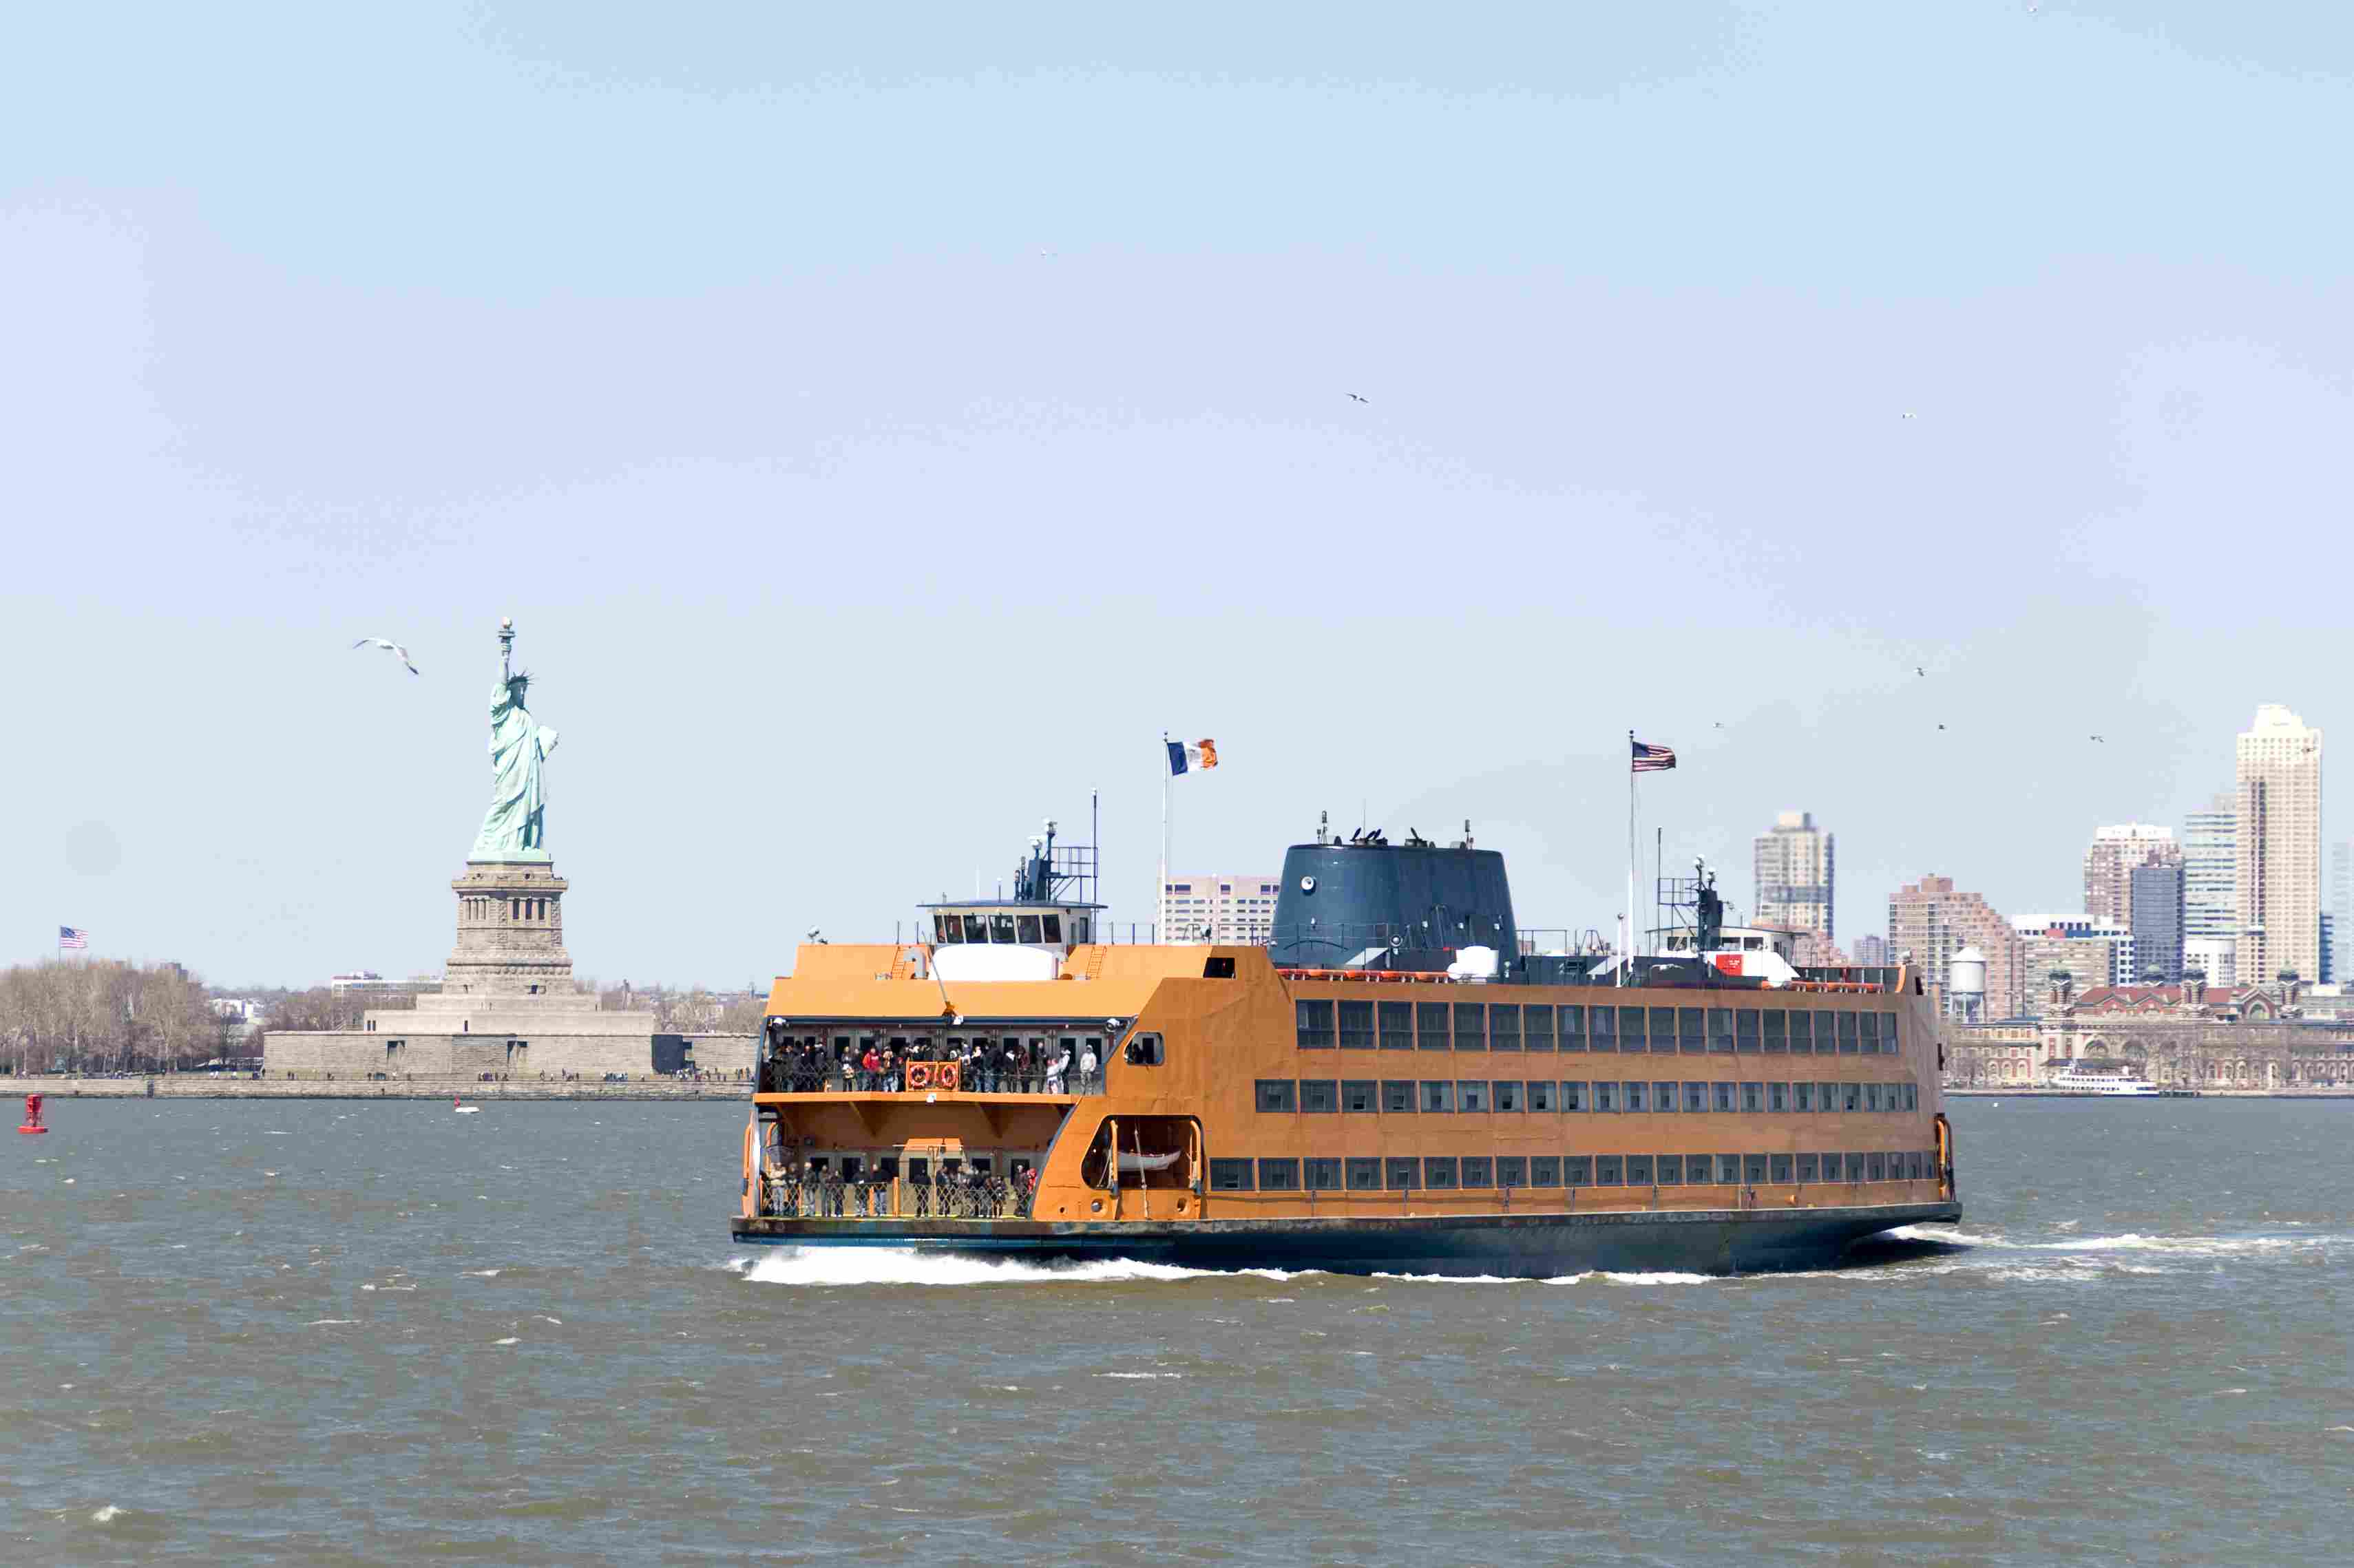 Staten Island ferry coming from Manhattan and passing by the Statue of Liberty